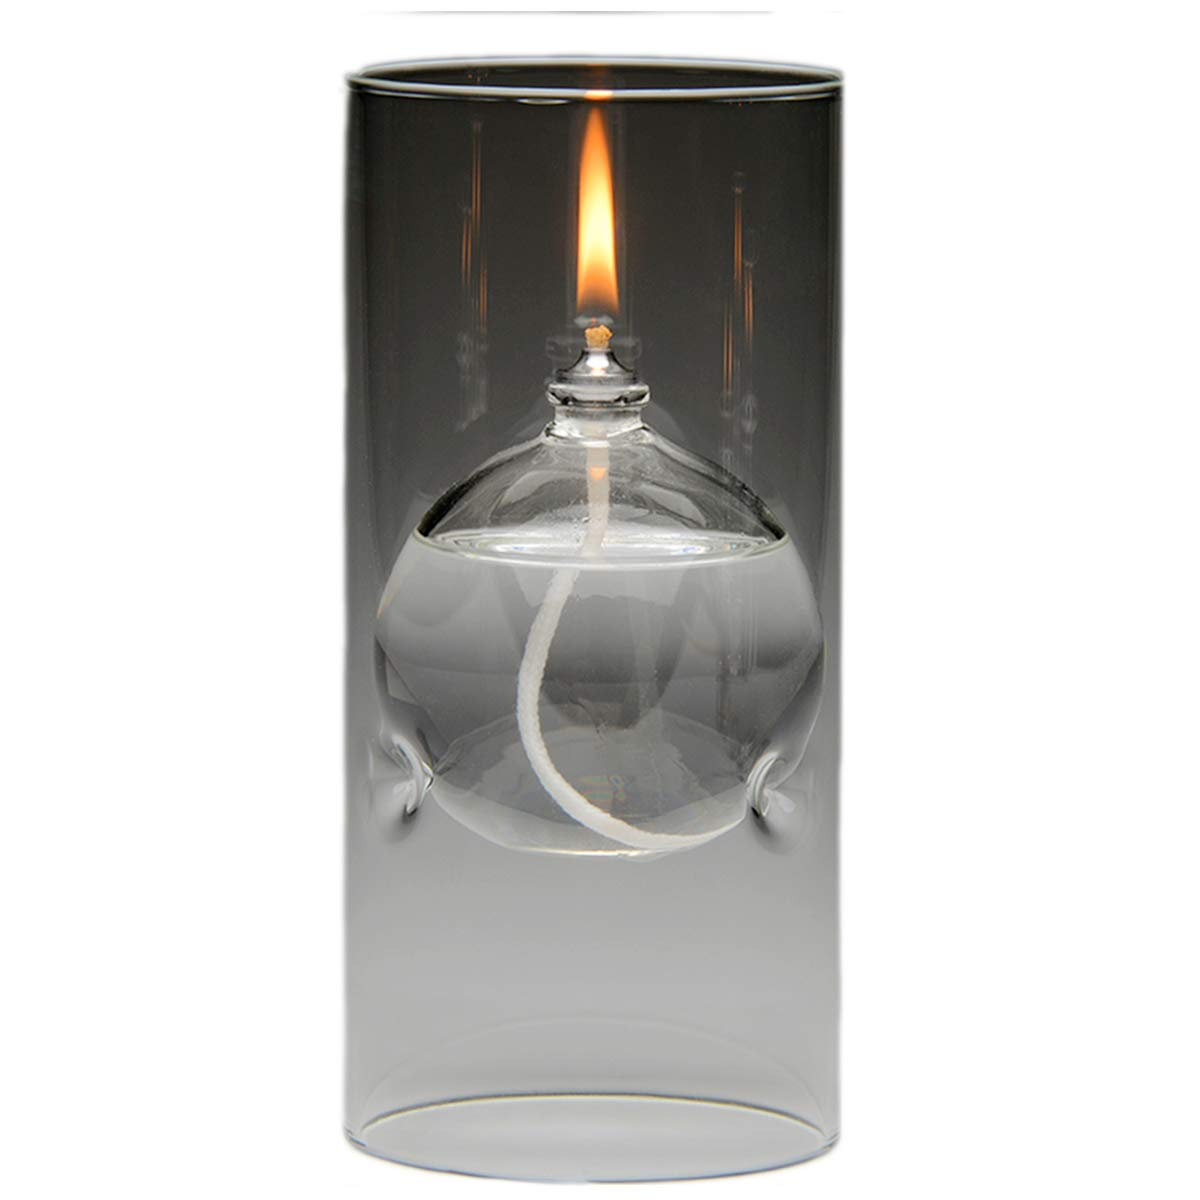 The Modern Transcend Clear Glass Oil Lamp Gift Set is a Unique Gift for Her. The Bliss Oil Candle Appears to Float in the Hurricane Candle Holder - Includes 16 oz. Smokeless Lamp Oil and a Funnel